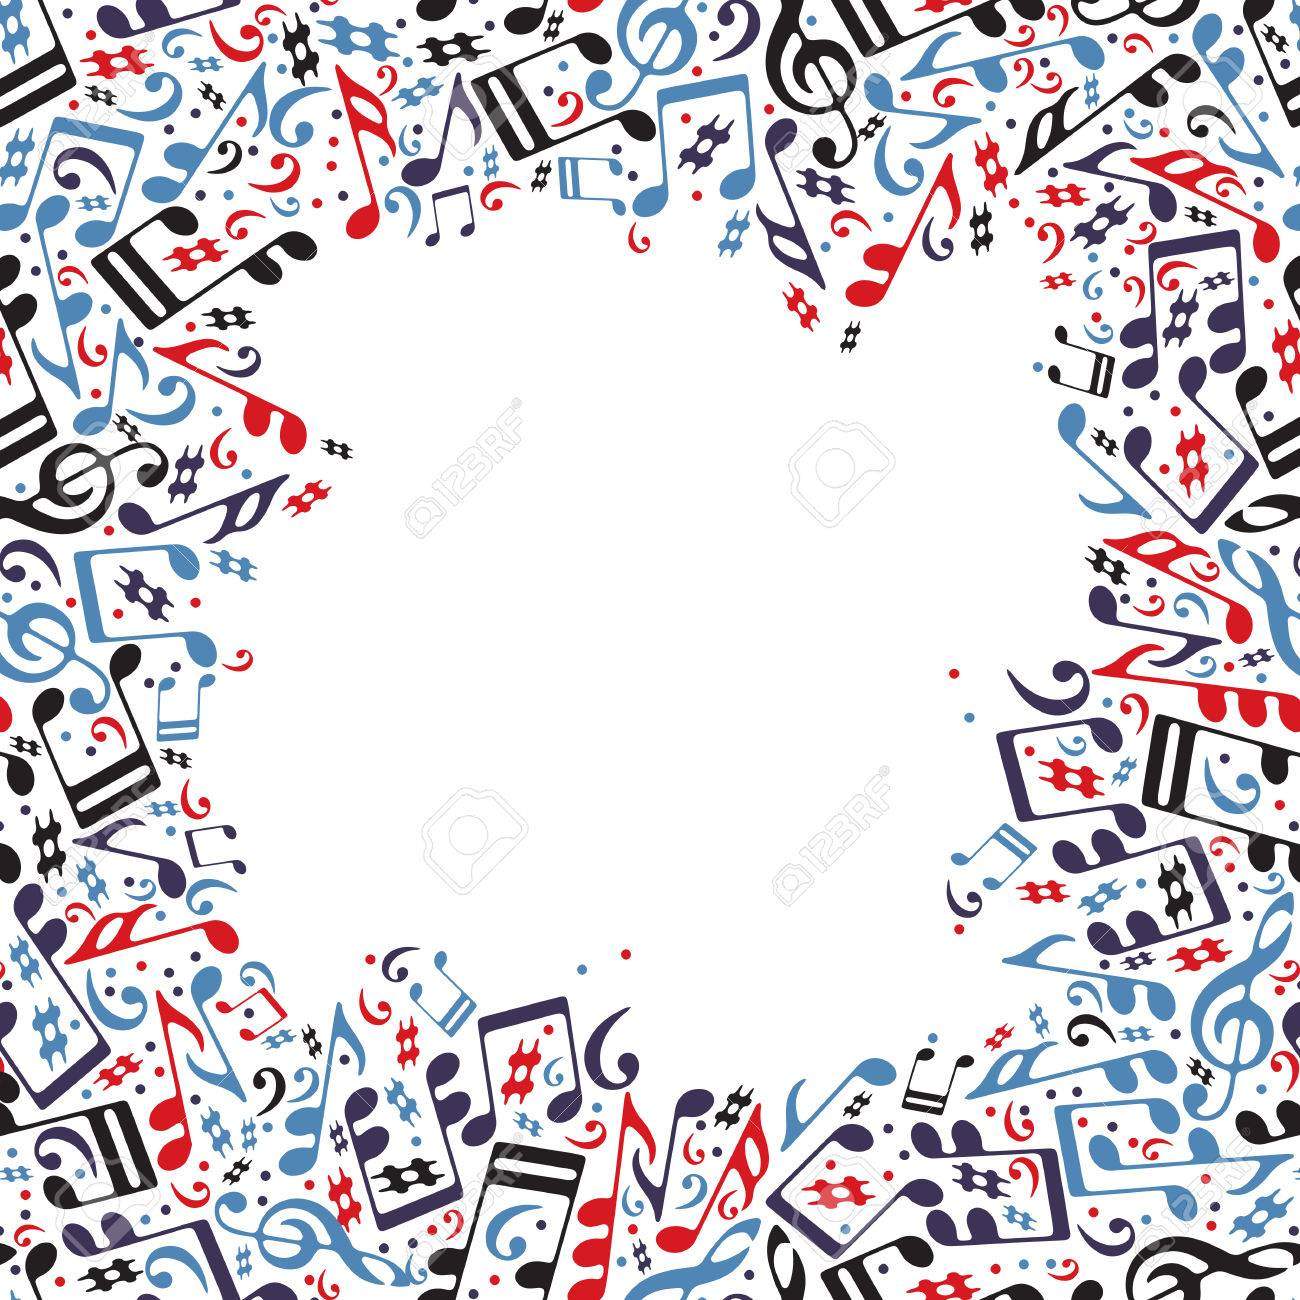 musical picture frame gallery craft decoration ideas musical picture frame gallery craft decoration ideas musical picture - Music Picture Frame